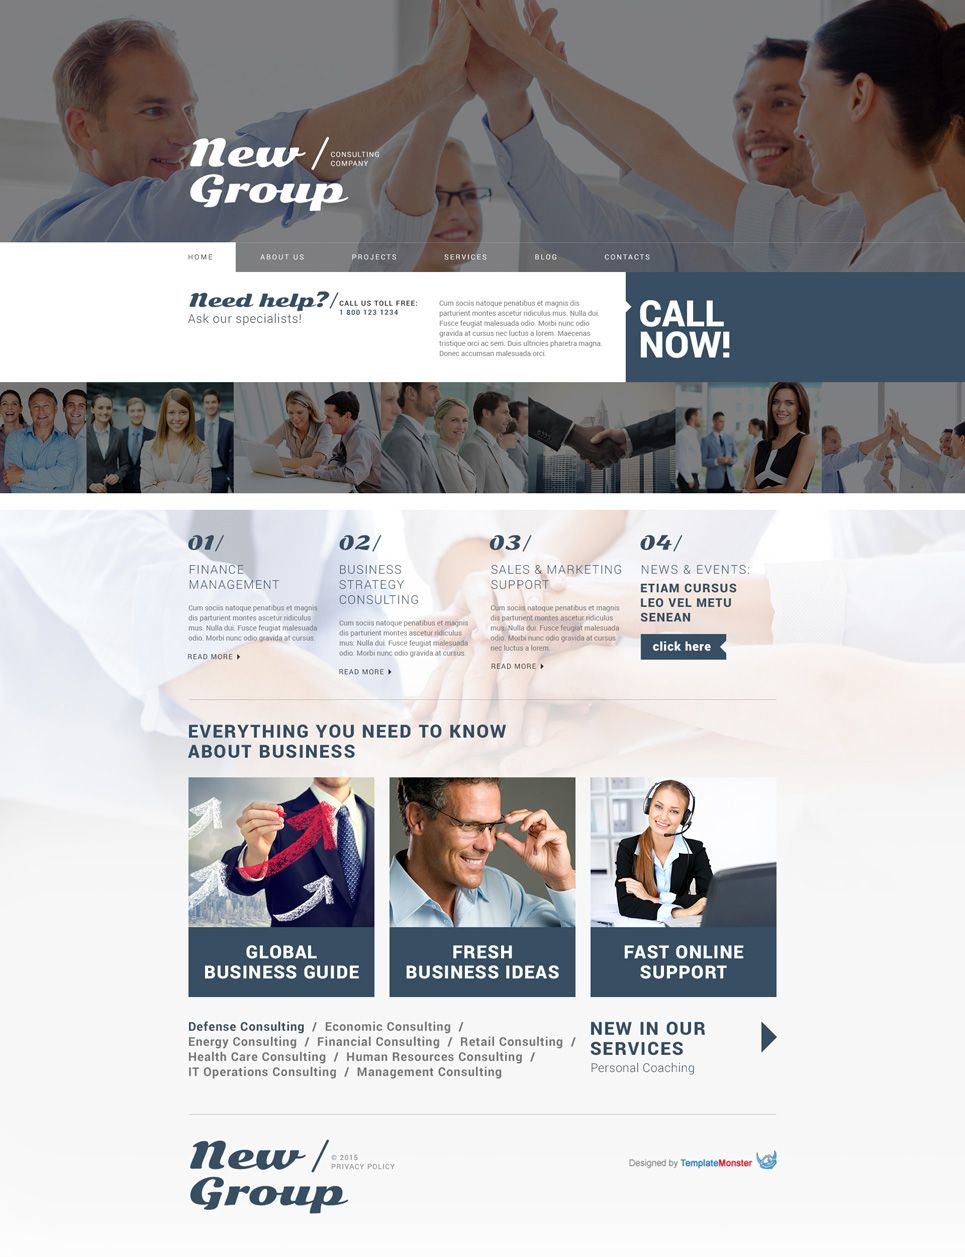 Free wordpress theme for consulting firm template website http free wordpress theme for consulting firm template website http pronofoot35fo Choice Image